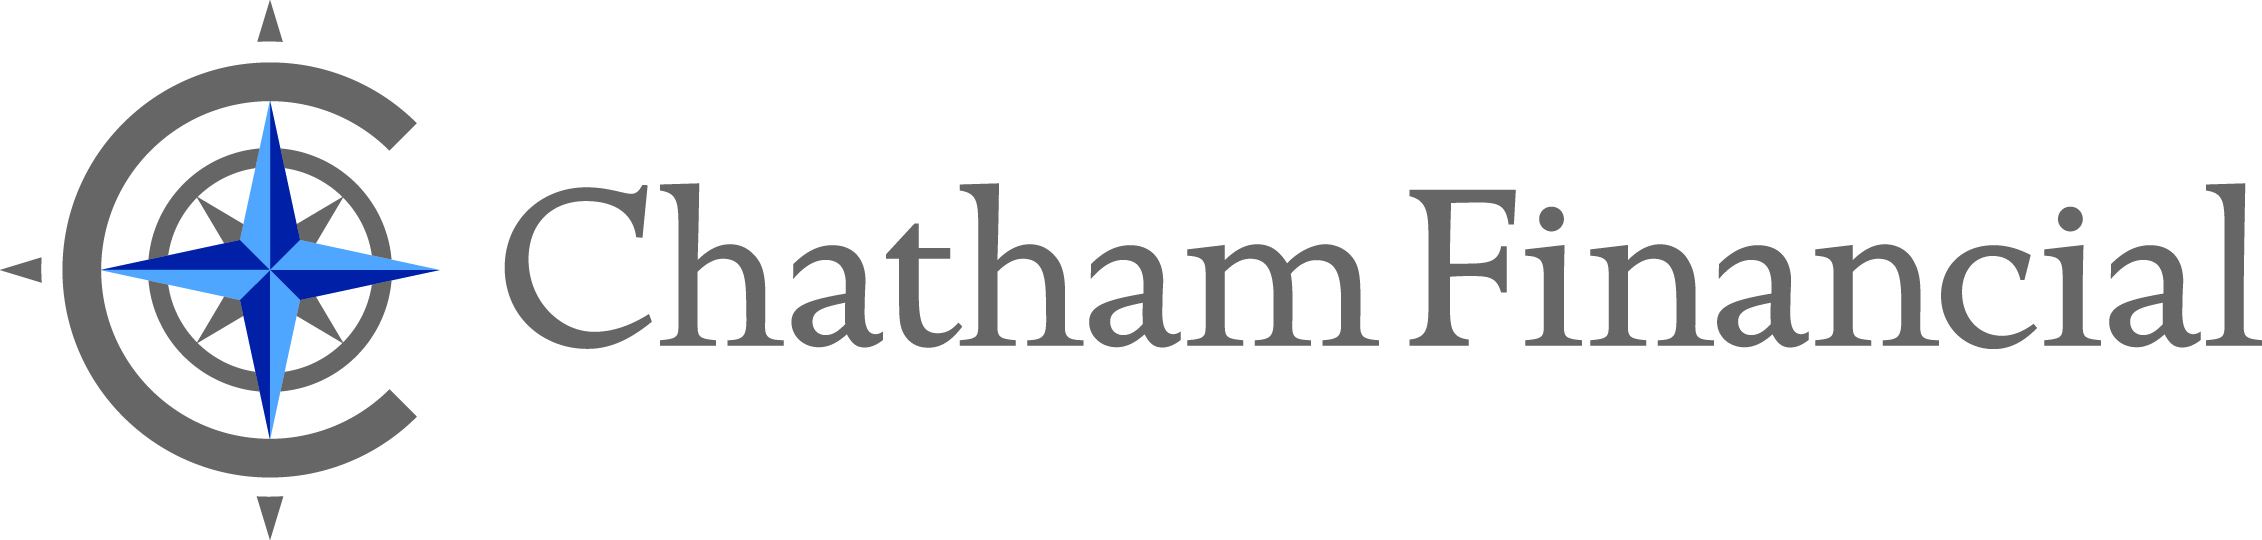 ChathamFin_logo_NEW2_cmyk_final_7x2